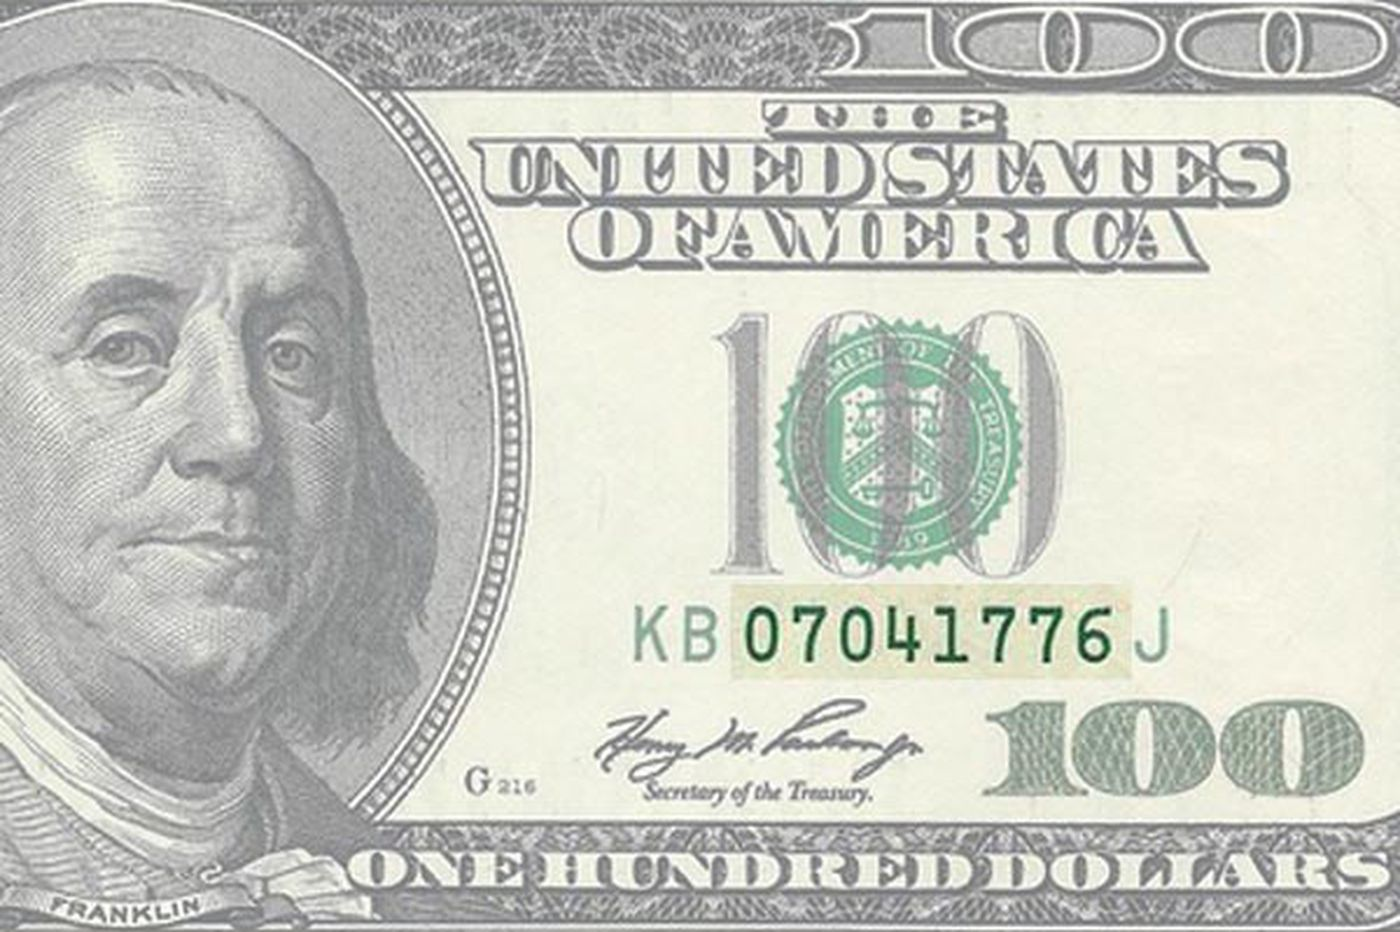 Check those bills! 'Fancy' serial numbers can mean big bucks